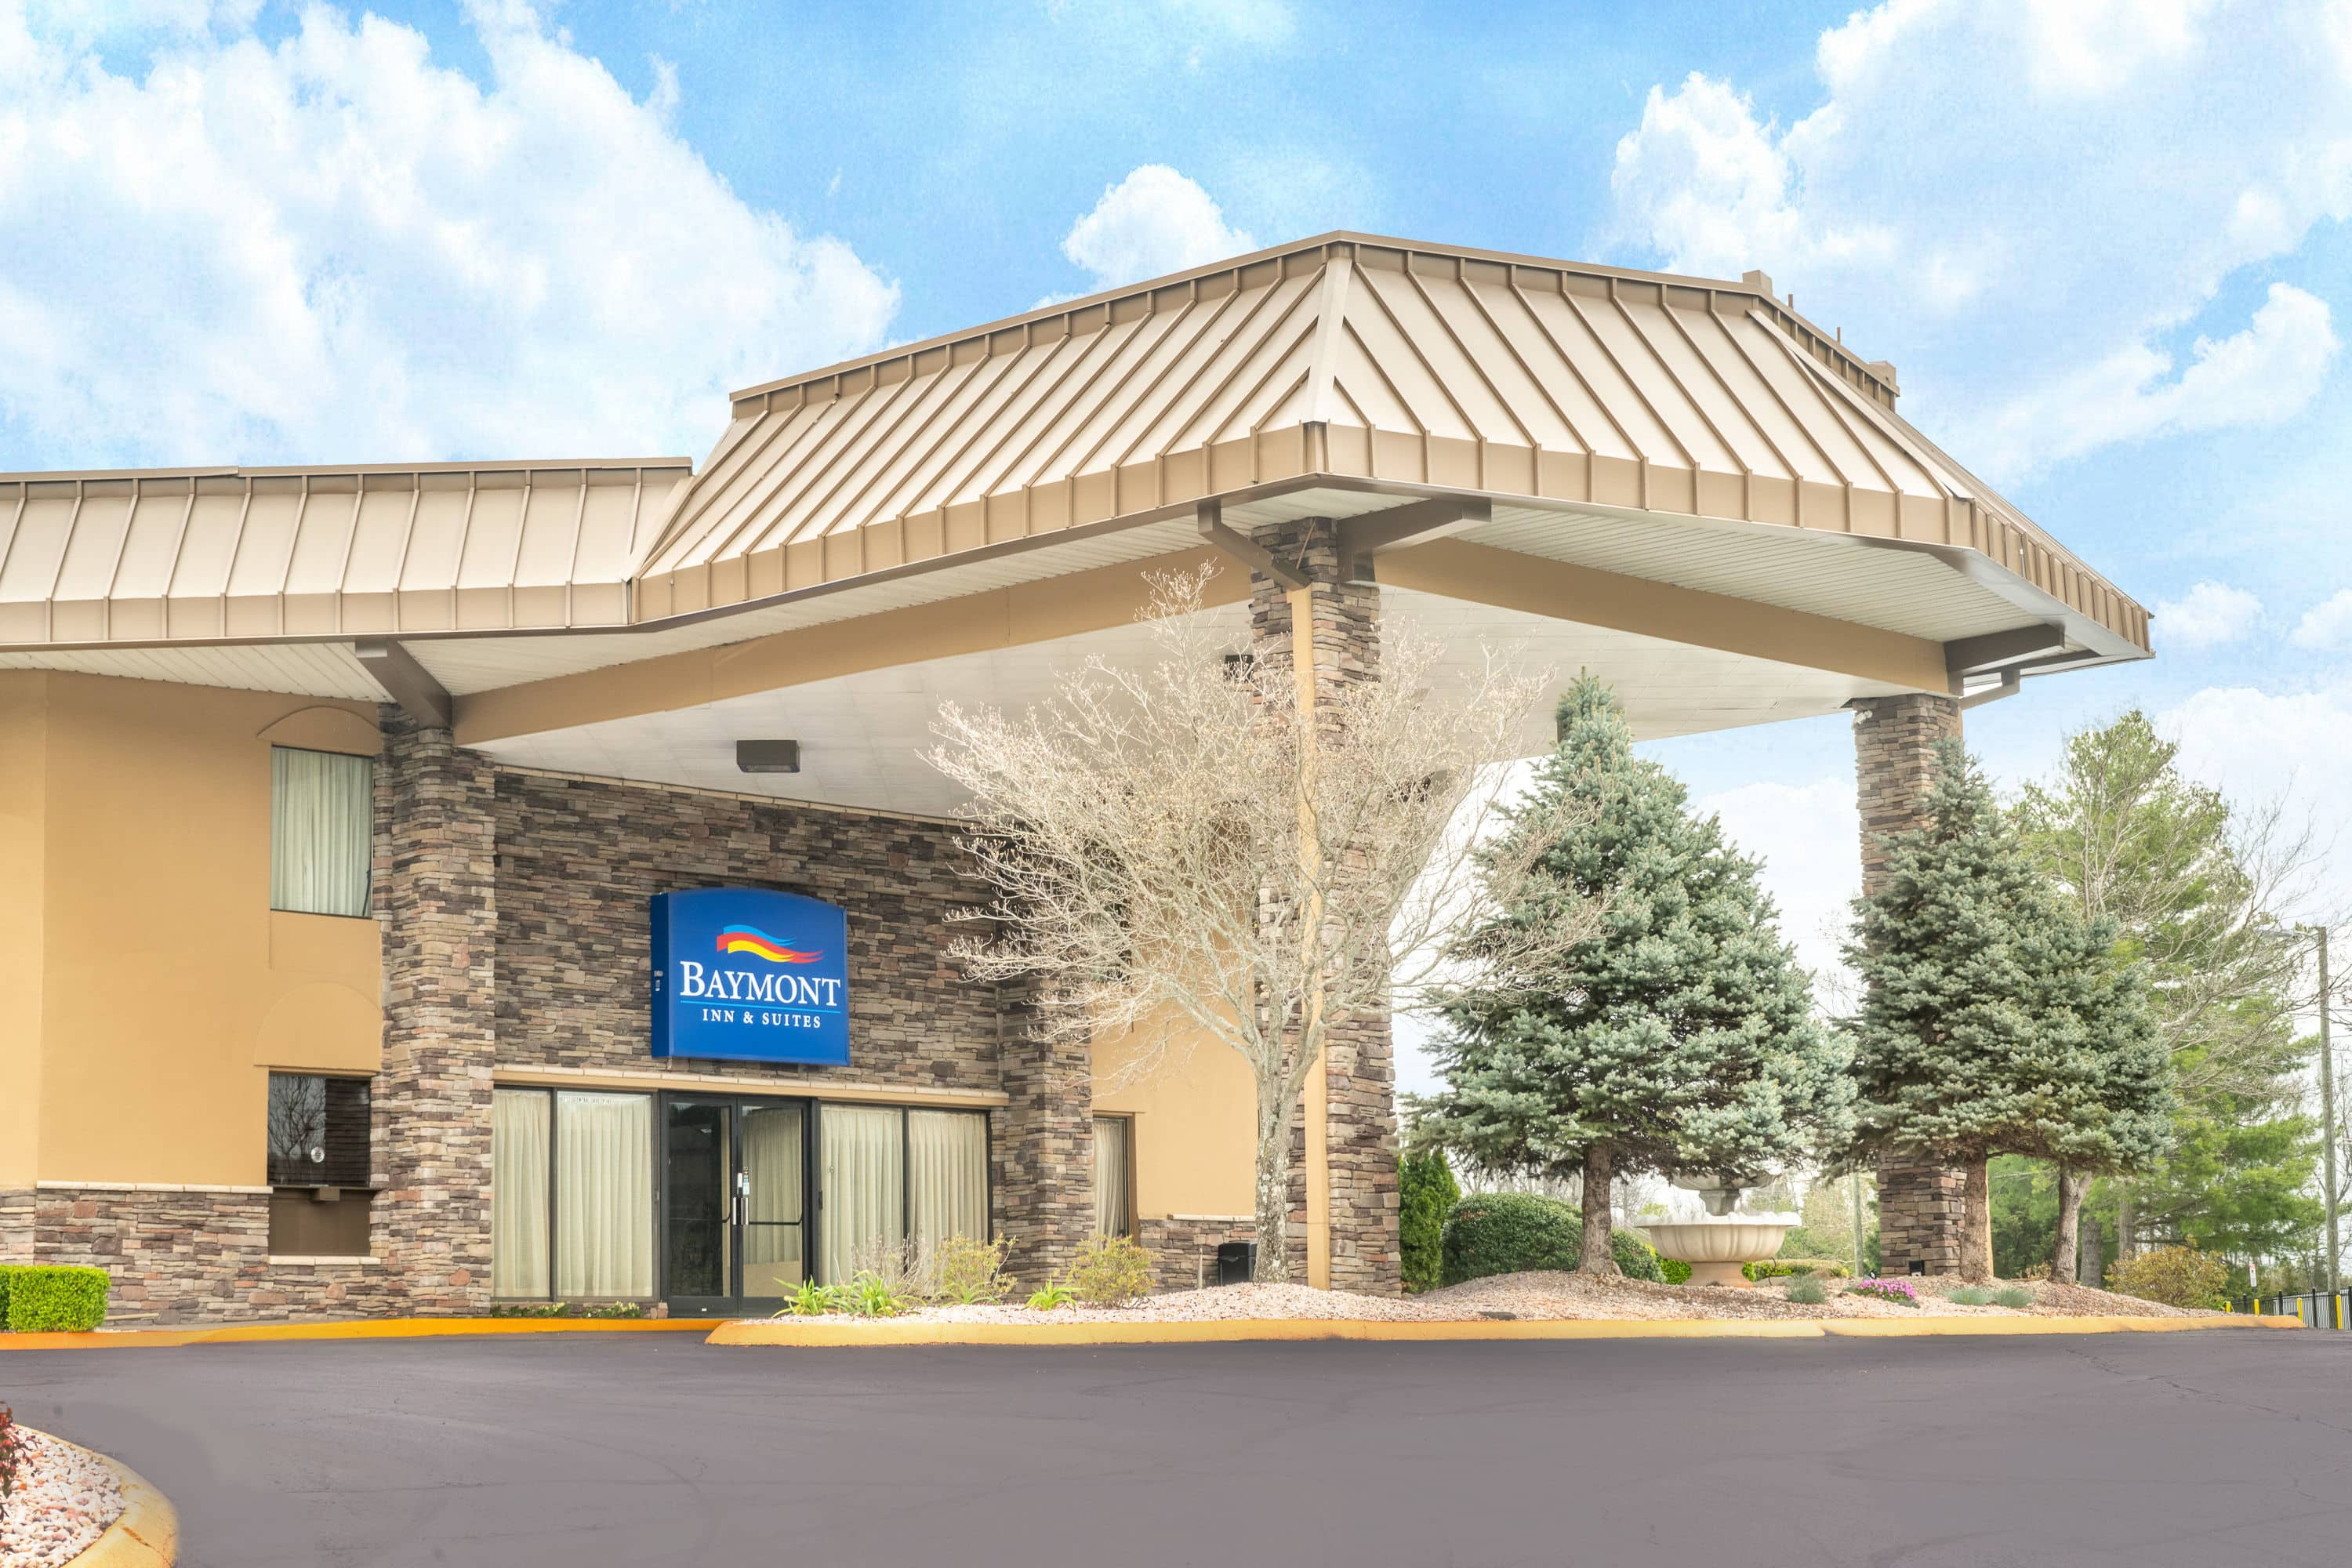 Baymont By Wyndham Knoxville I 75 Knoxville Hotels Tn 37912